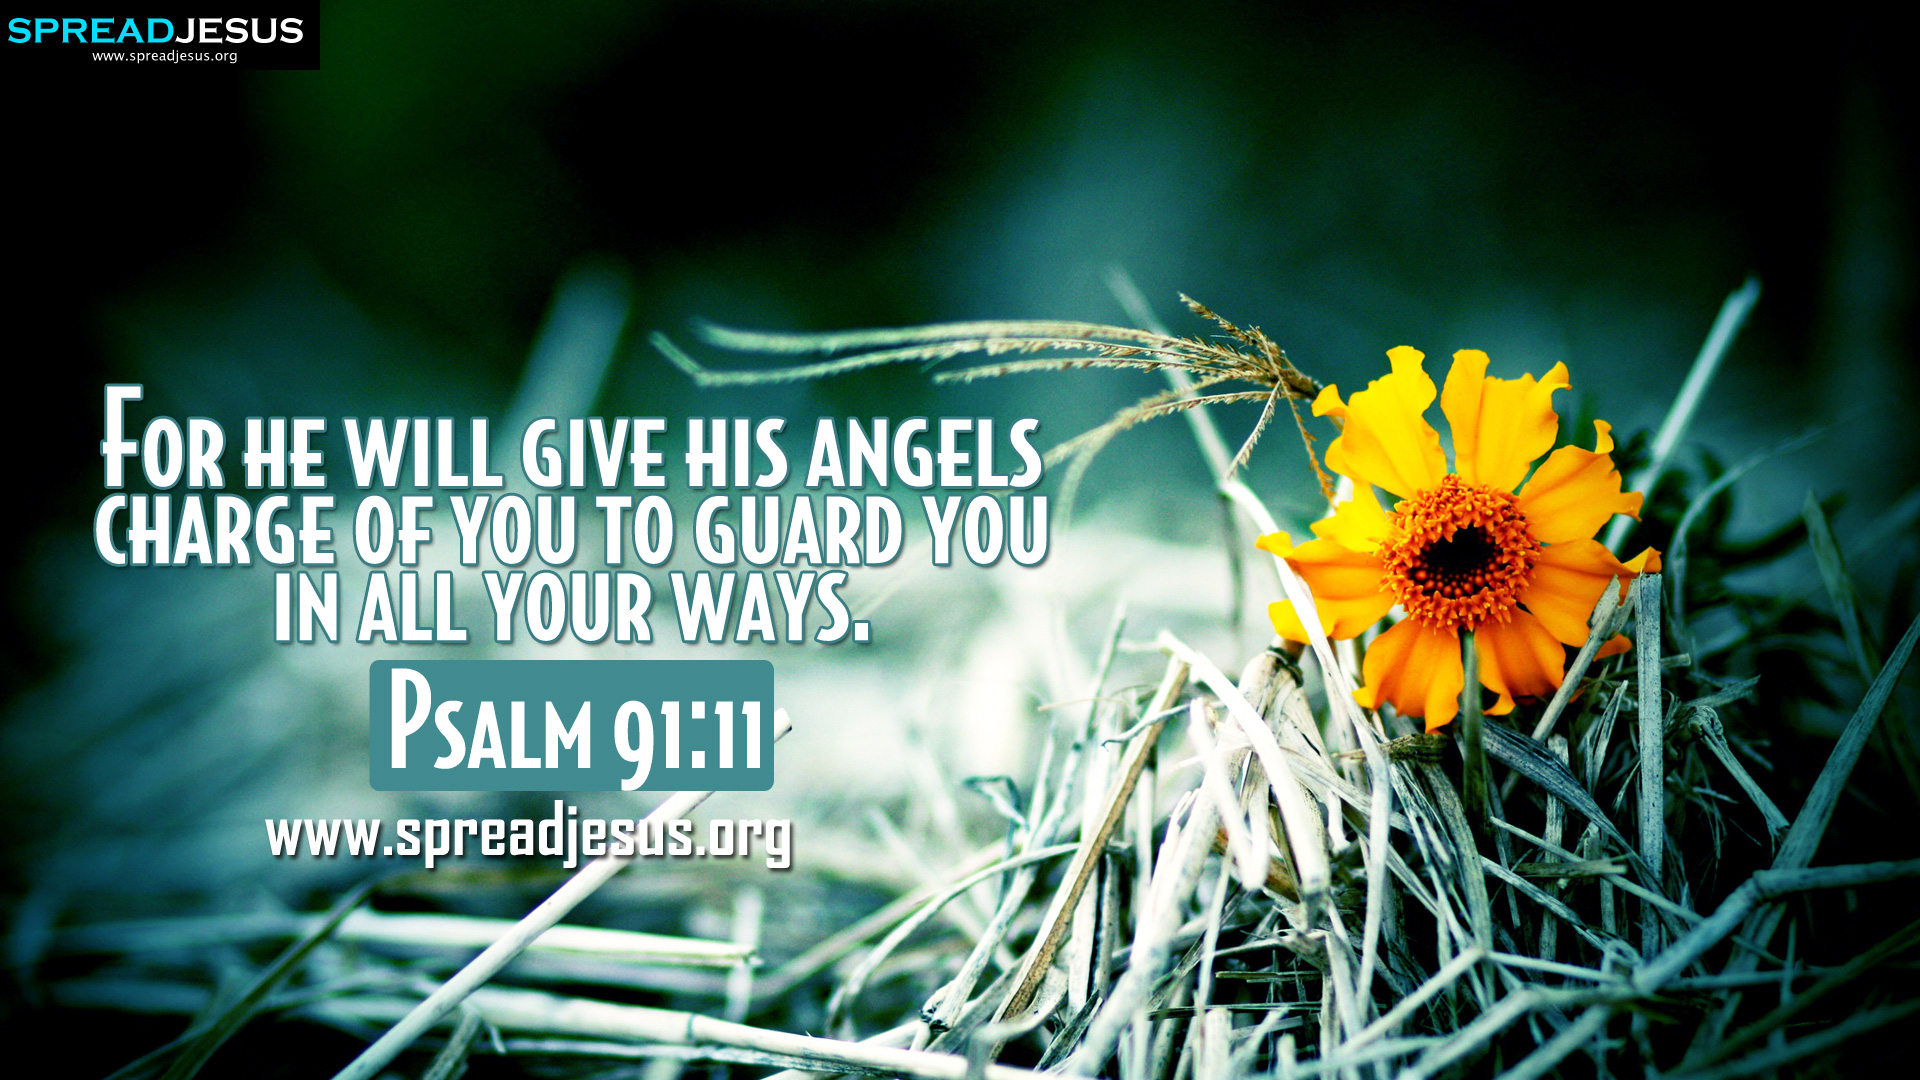 Psalm 9111 BIBLE QUOTES HD WALLPAPERS FREE DOWNLOAD For he will give 1920x1080